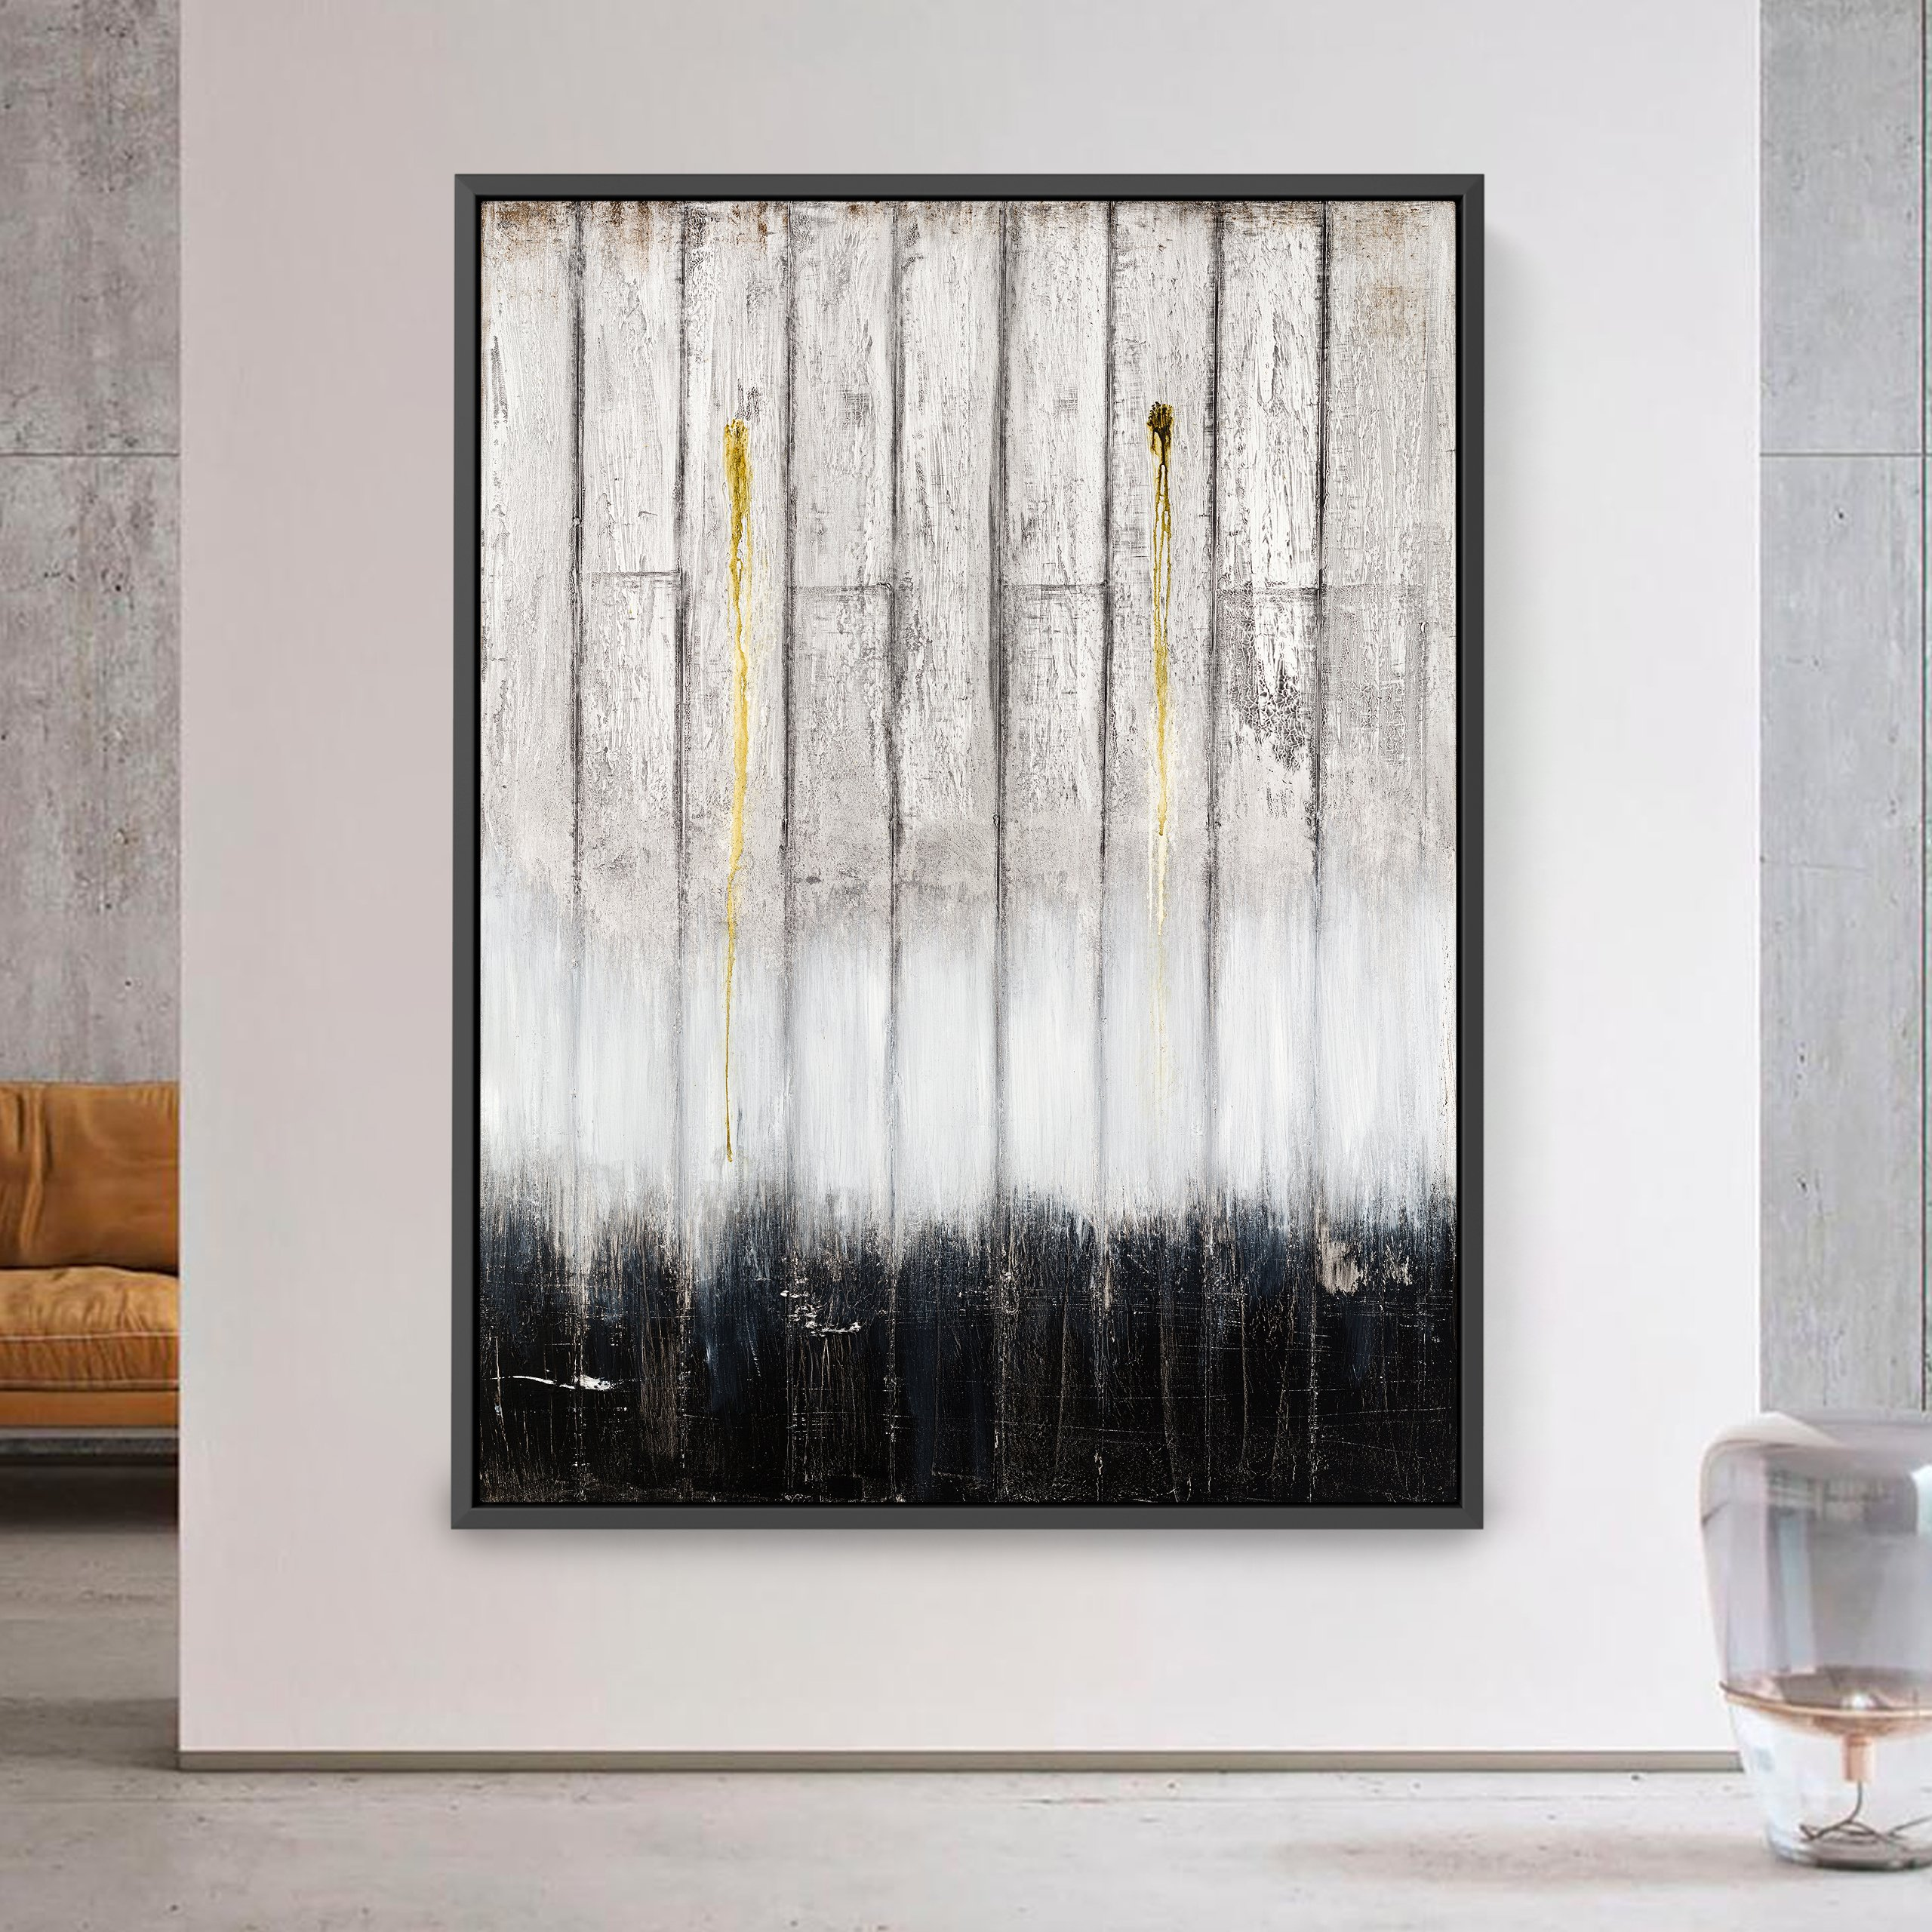 Black and white abstract art from interior decor